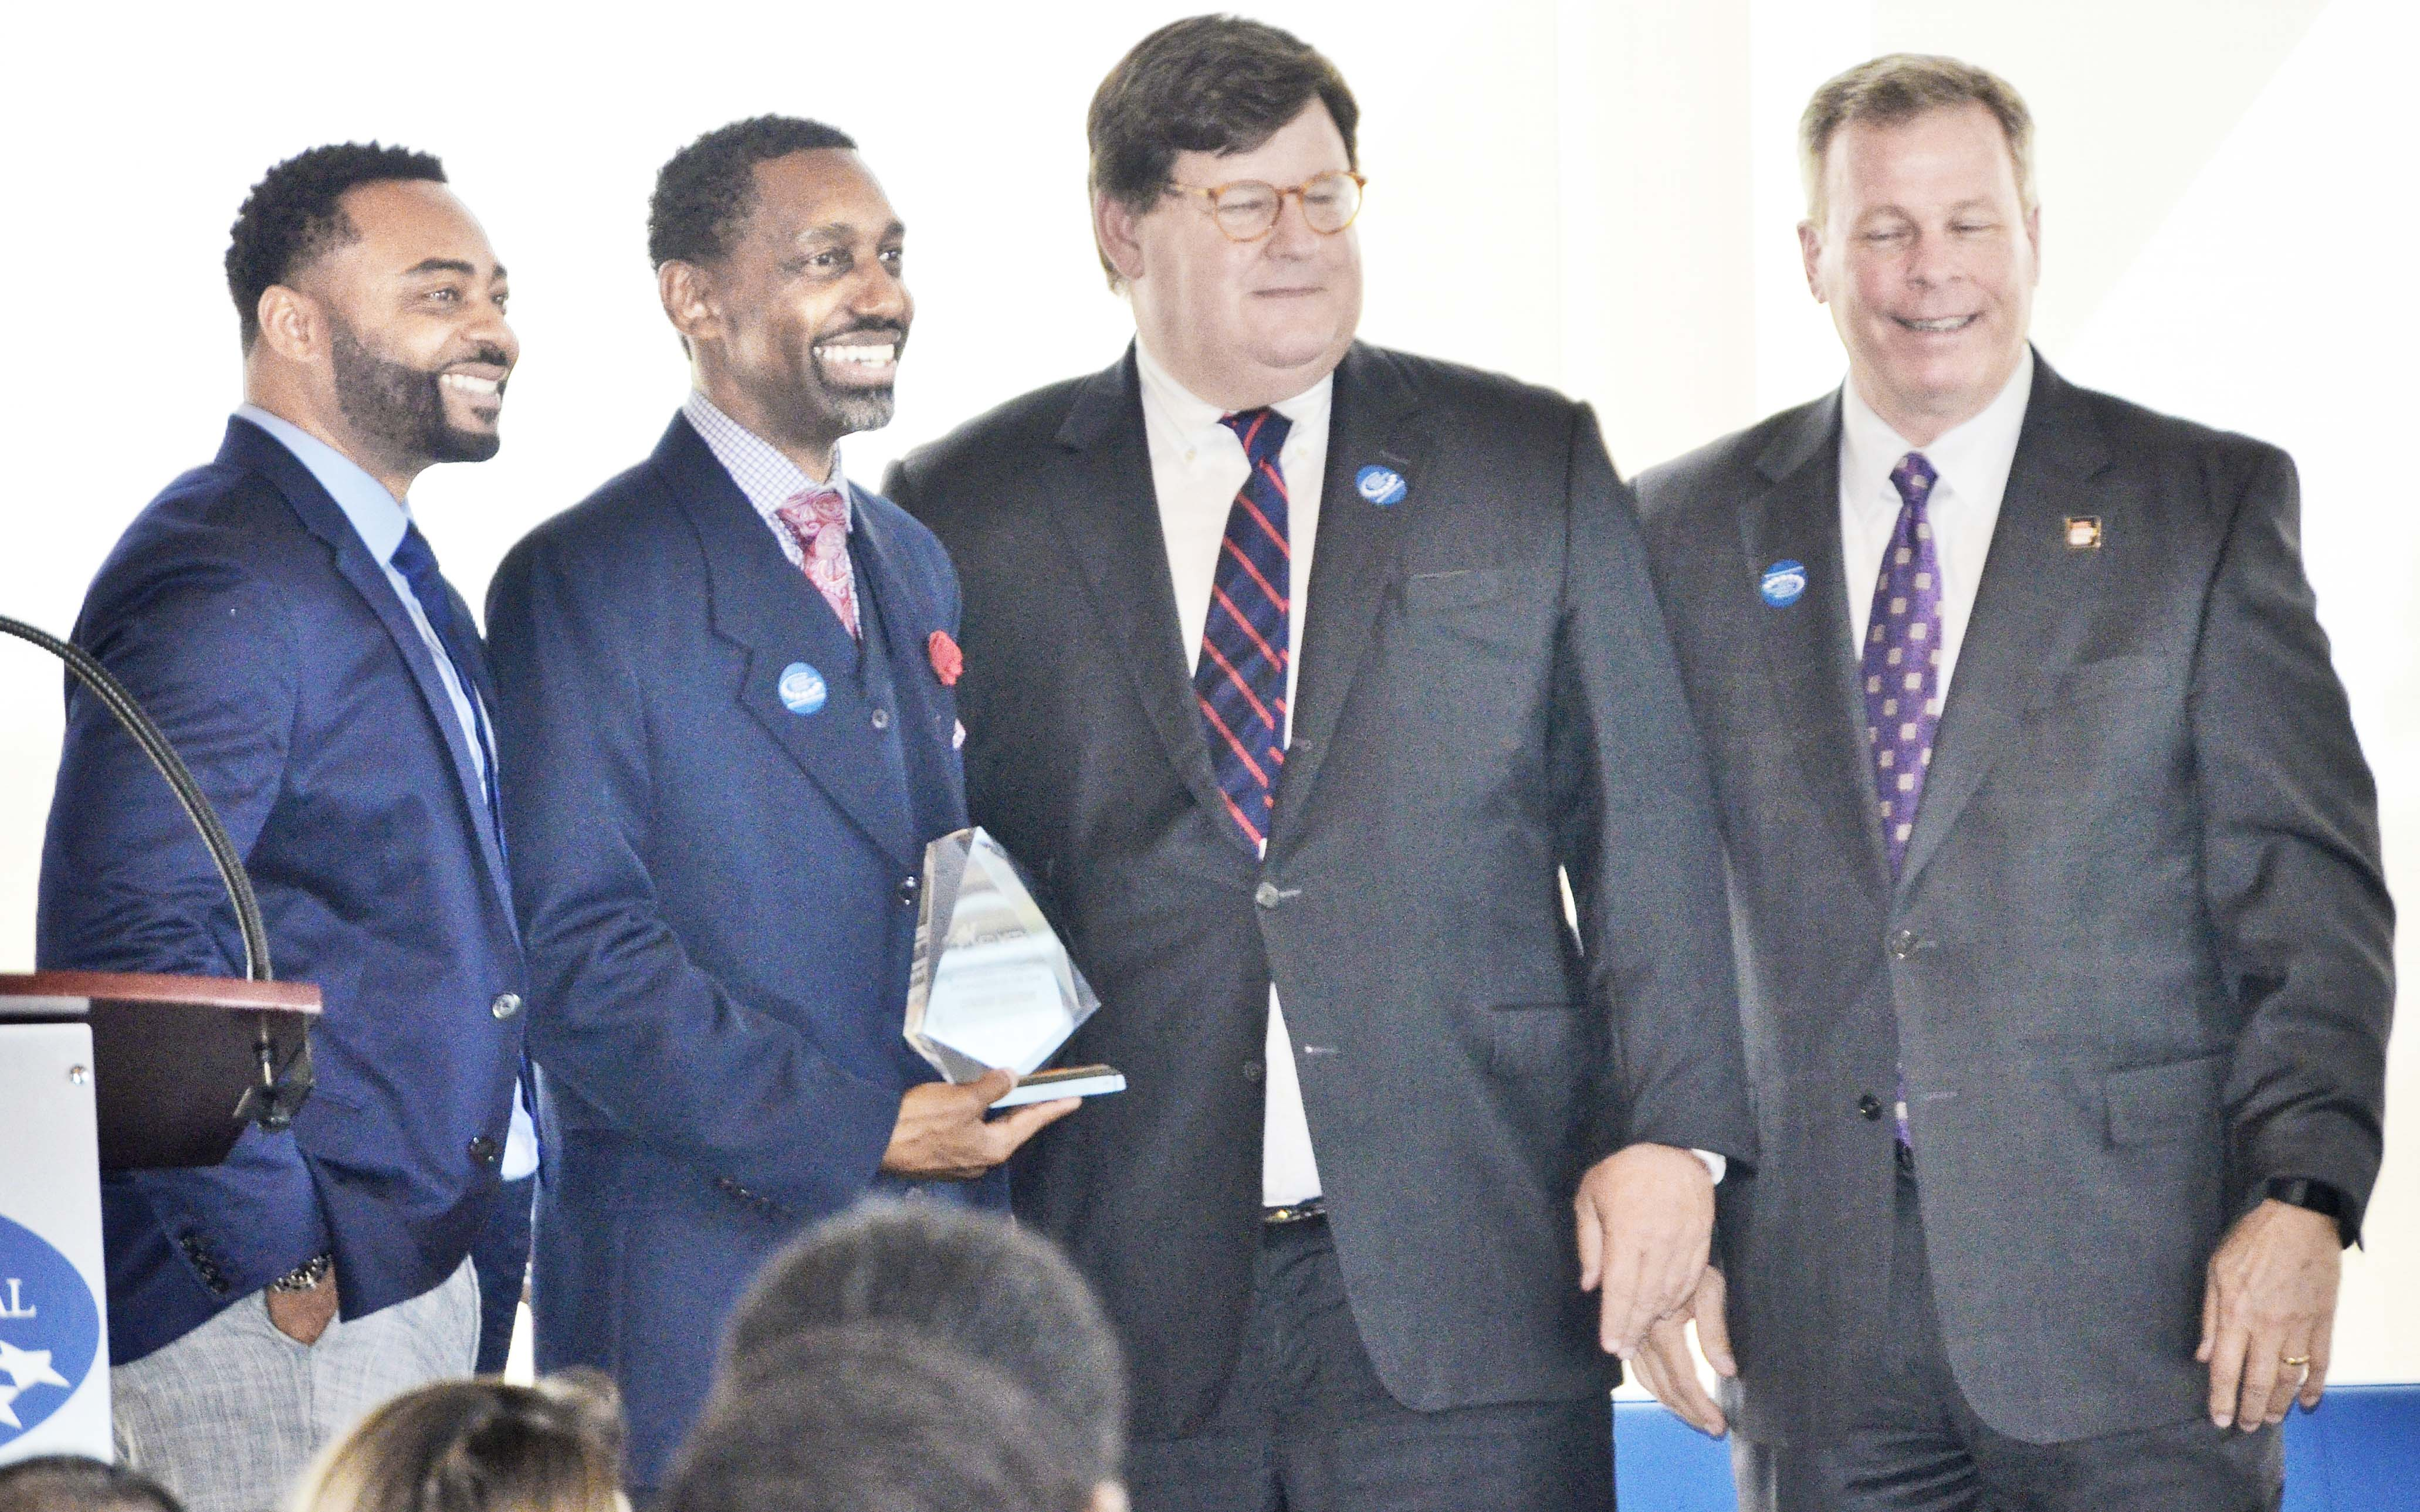 Owner Larry Freeman of Synergy Saturday was presented with the Minority Support Organization of the Year award.